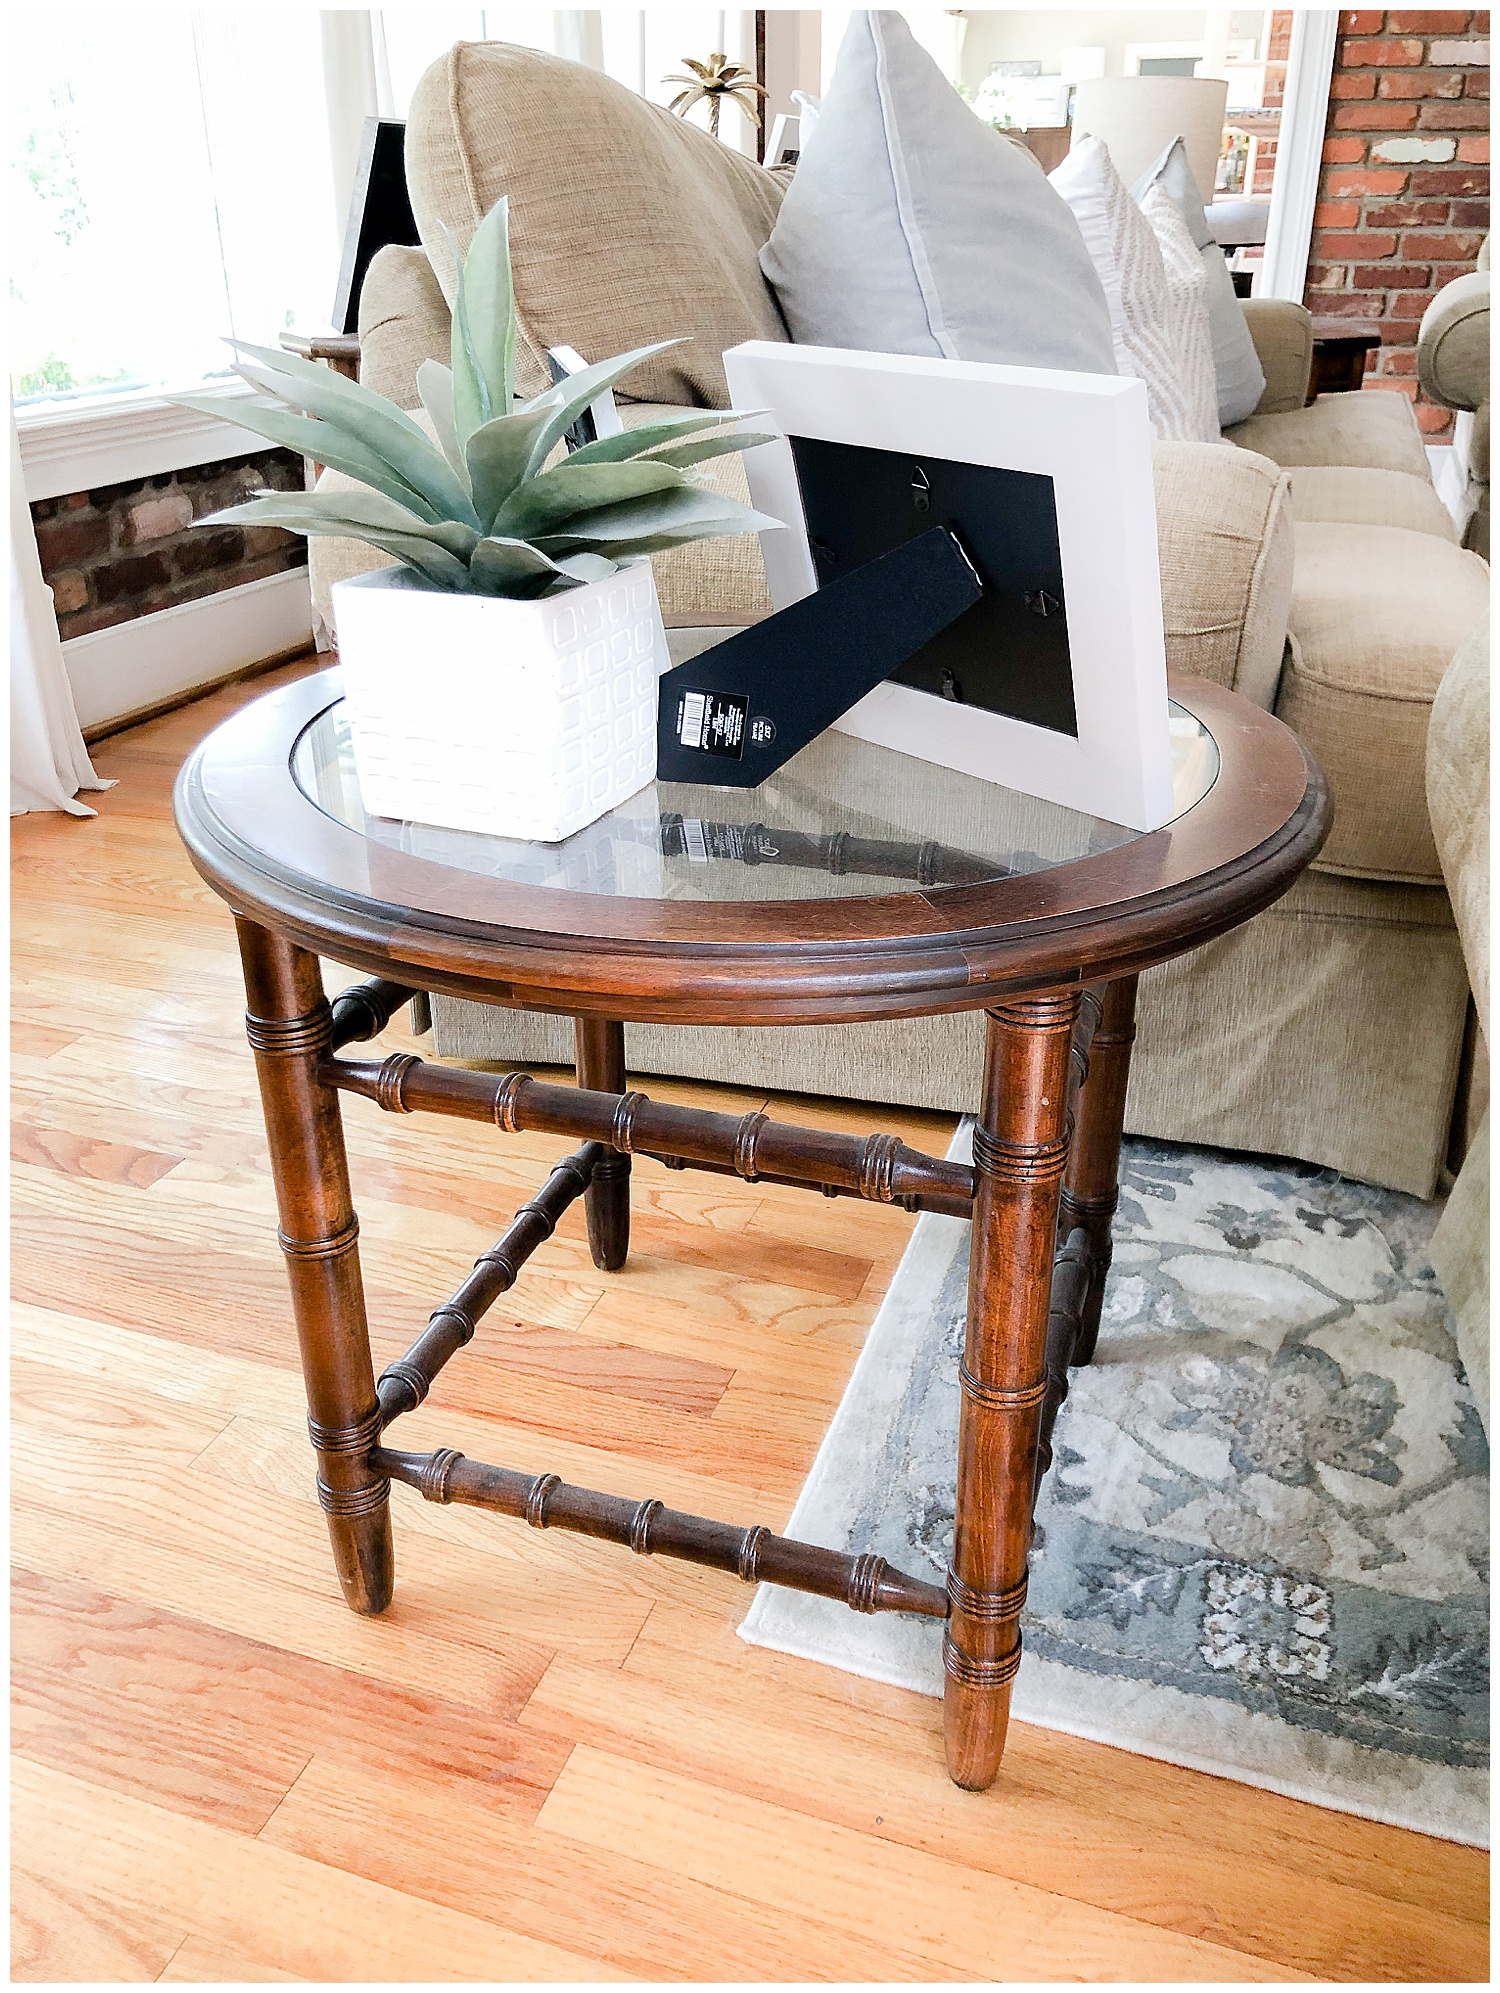 BAMBOO GLASS TOP SIDE TABLE: $65